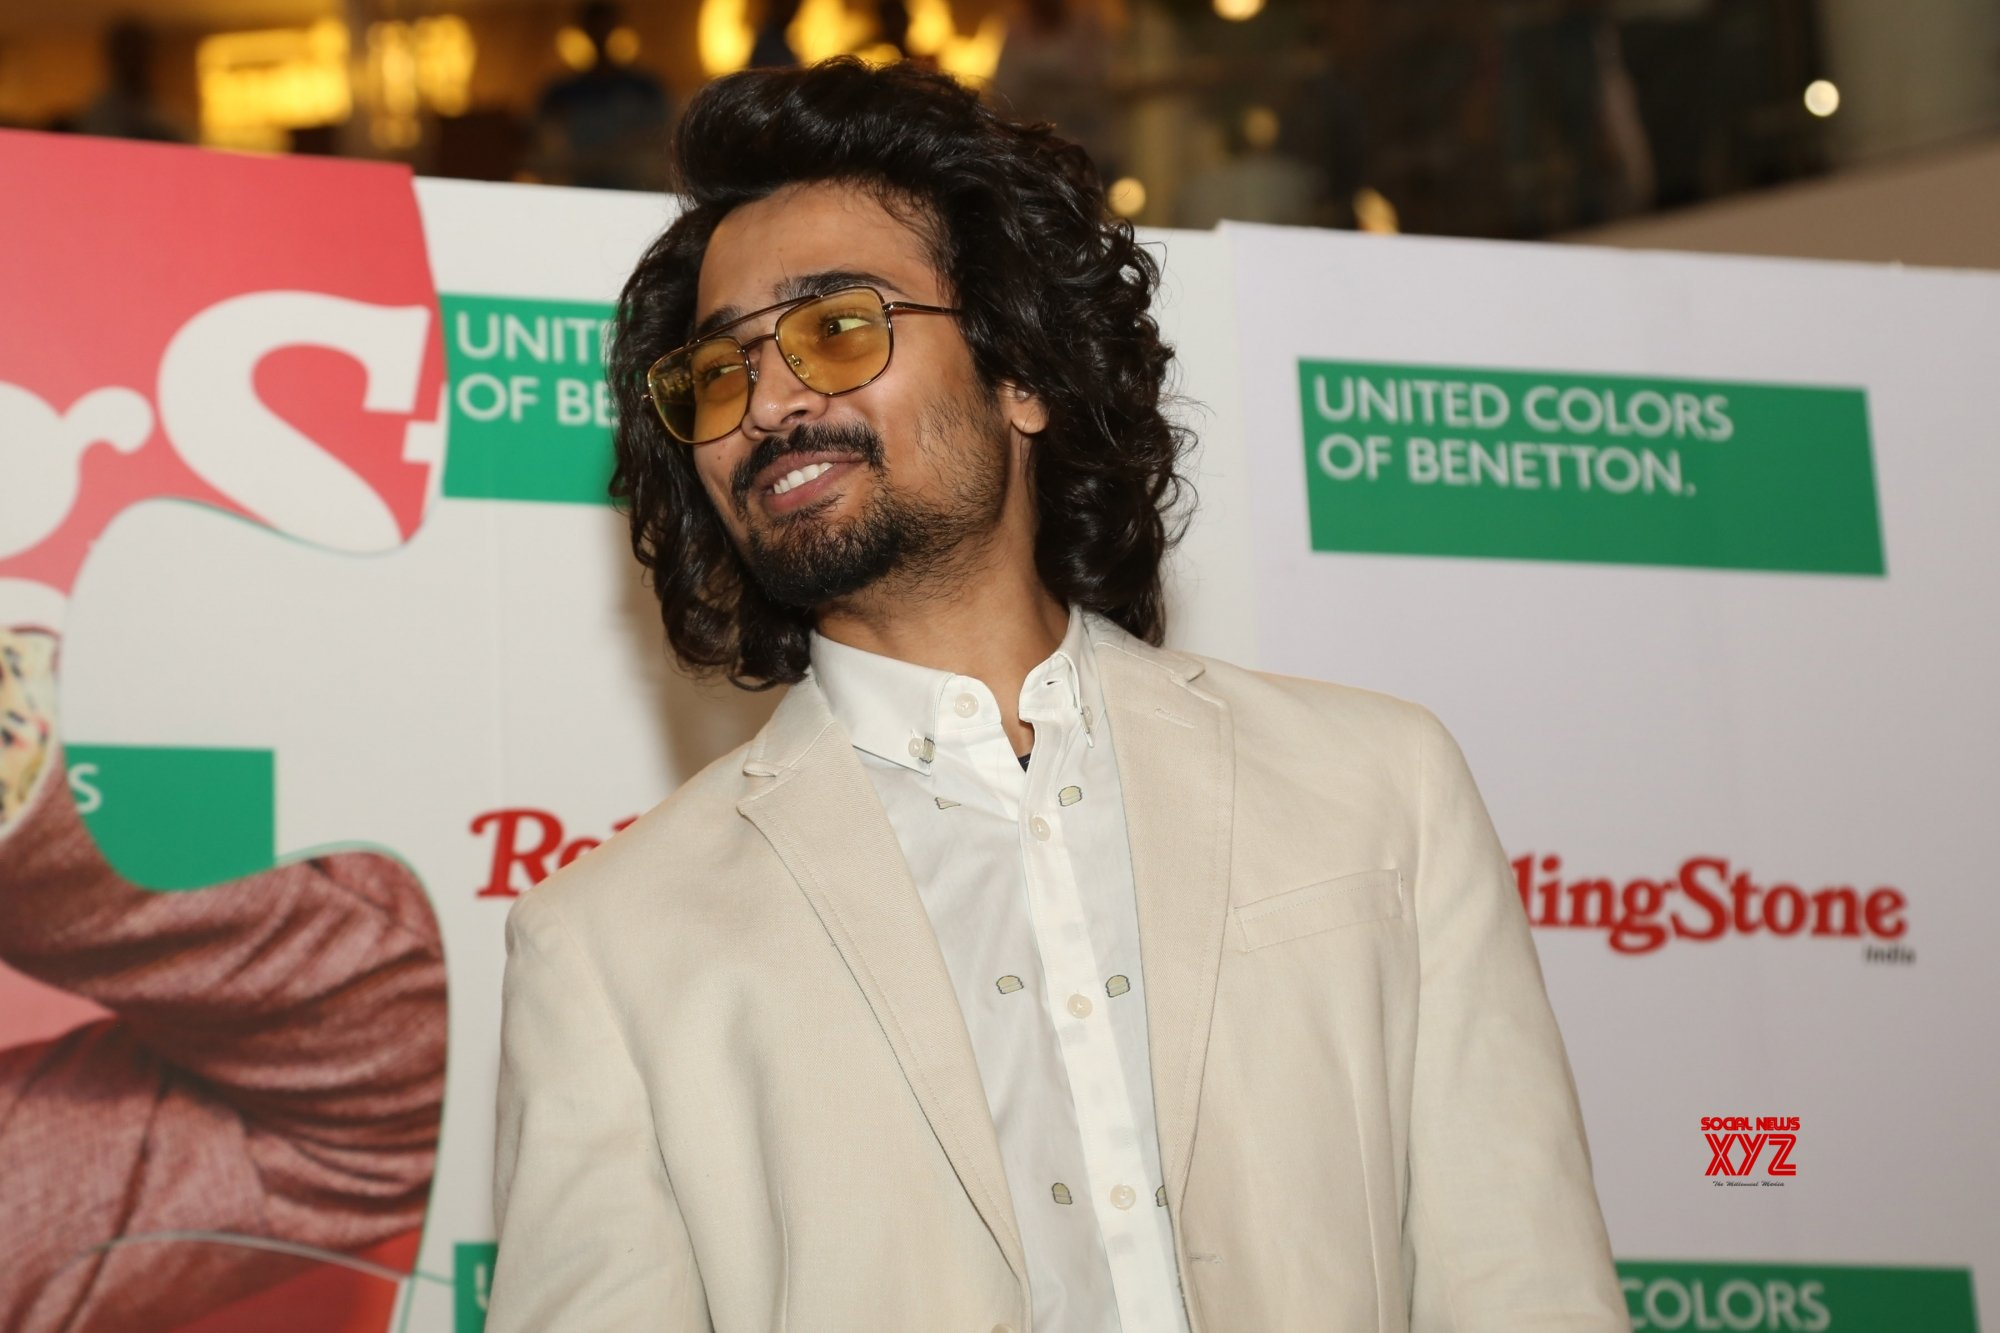 Bhuvan Bam's 'Ajnabee' climbs to #1 on India's iTunes chart